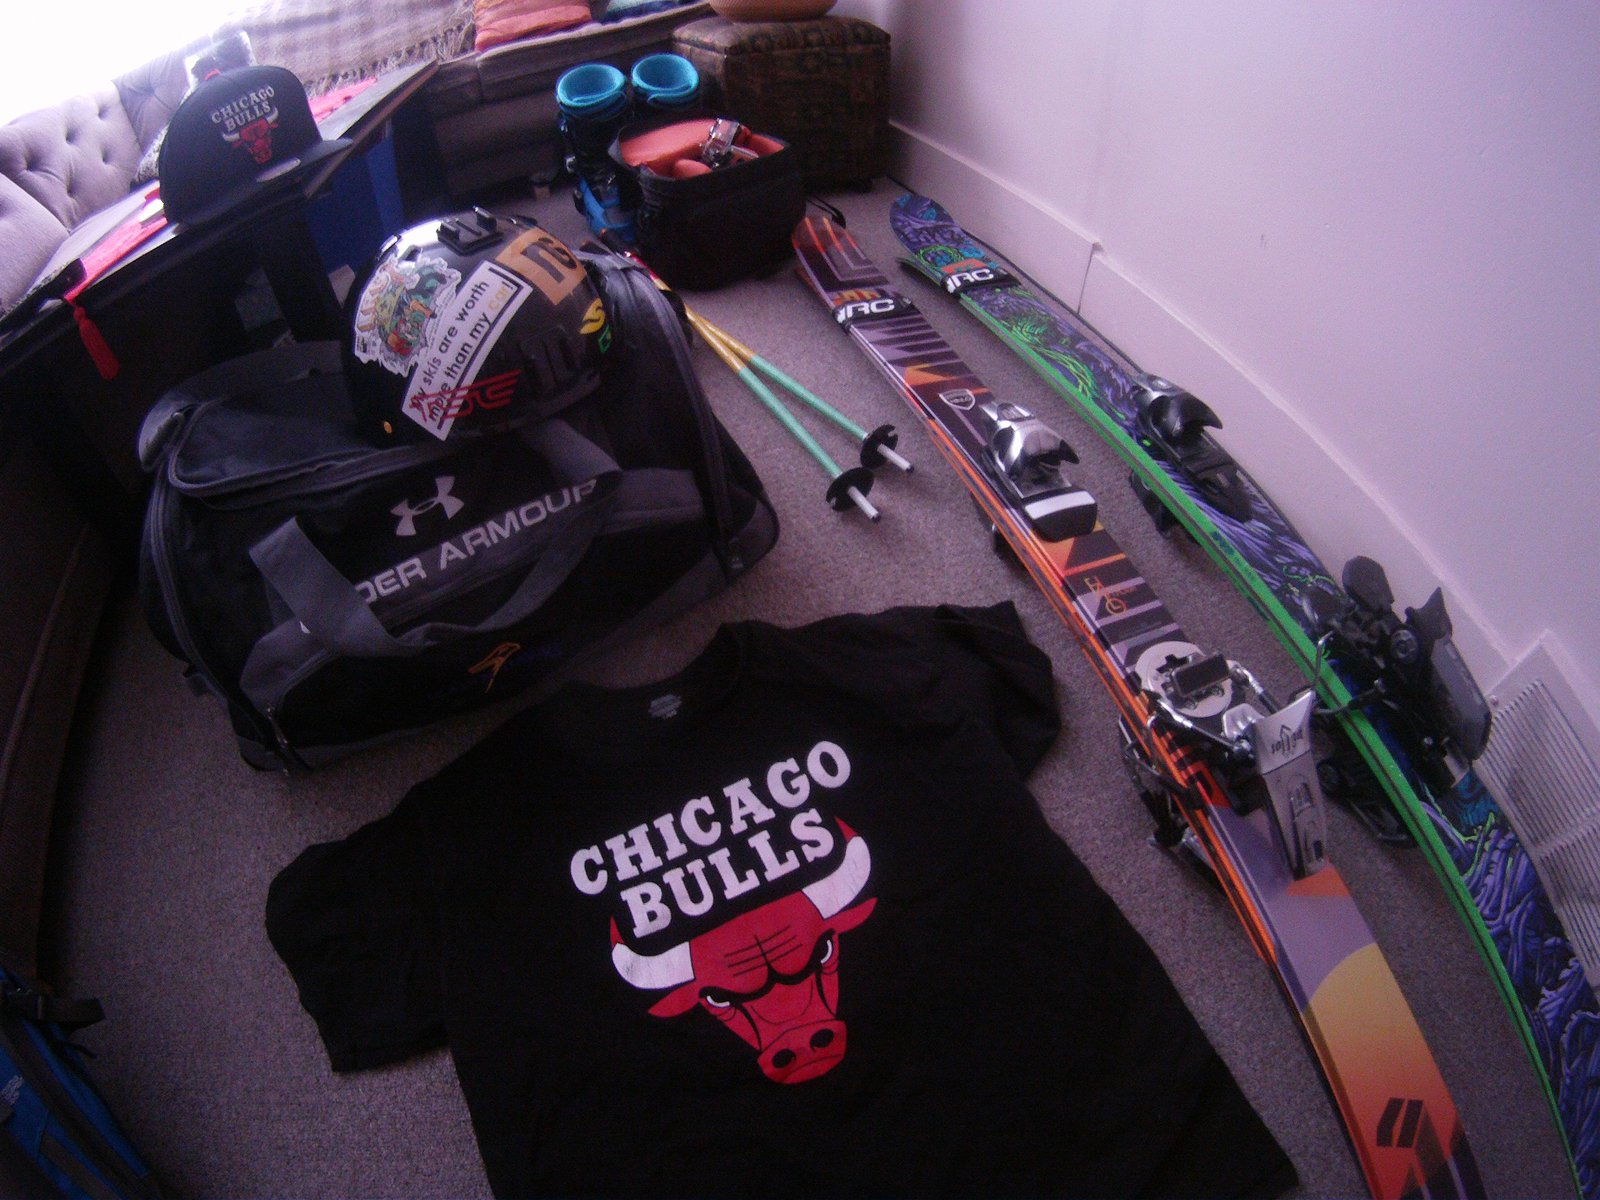 Ski east, from loo to devil's head then chicago for new year party